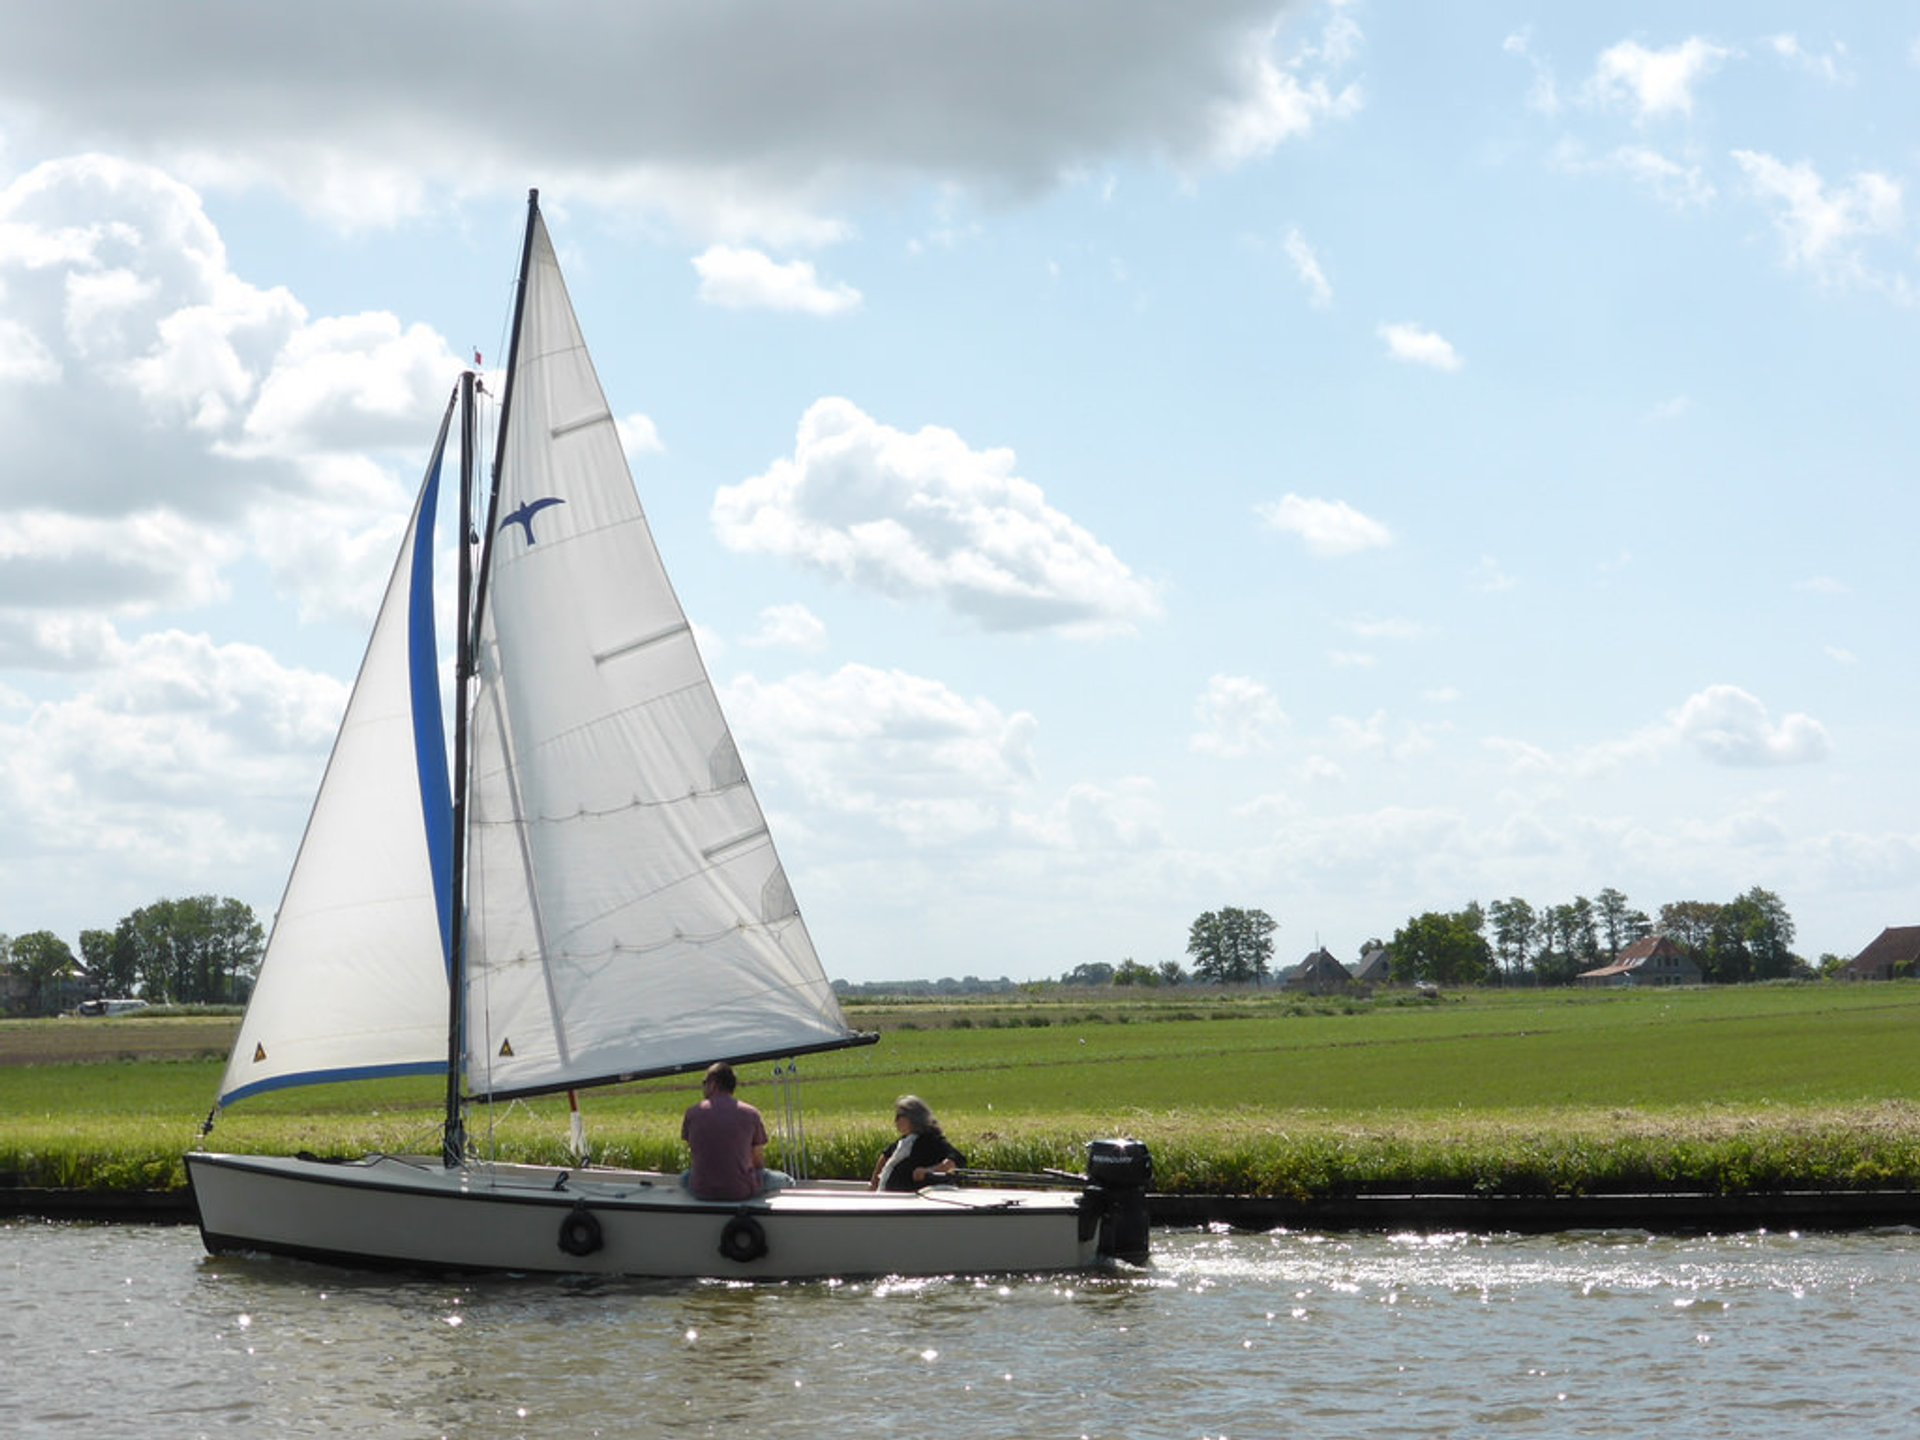 Sailing and Cruising Season in The Netherlands - Best Season 2019